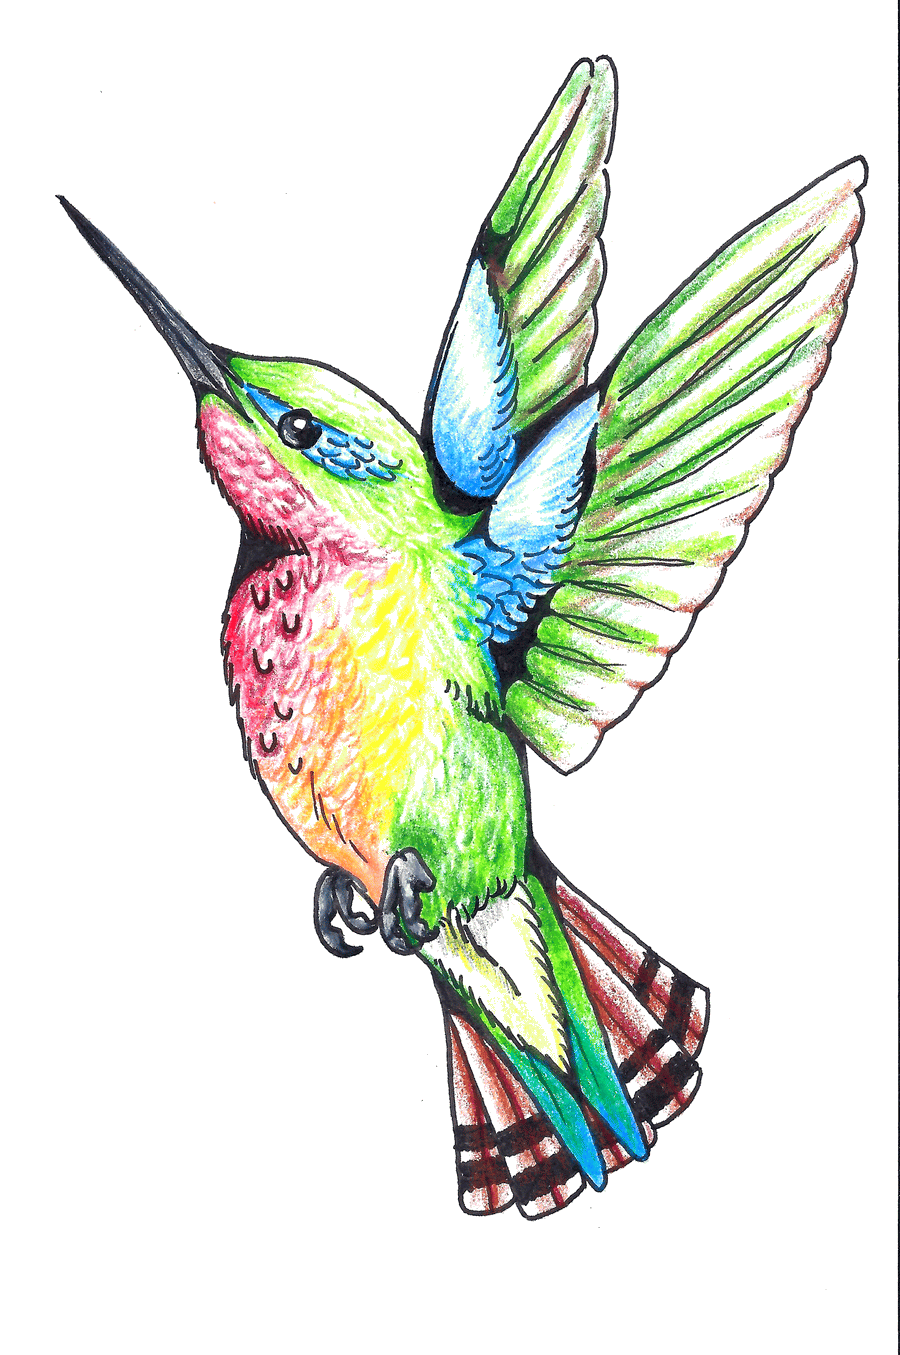 35850fb97d7d6 Classic Colorful Flying Hummingbird Tattoo Design | hummer art ...